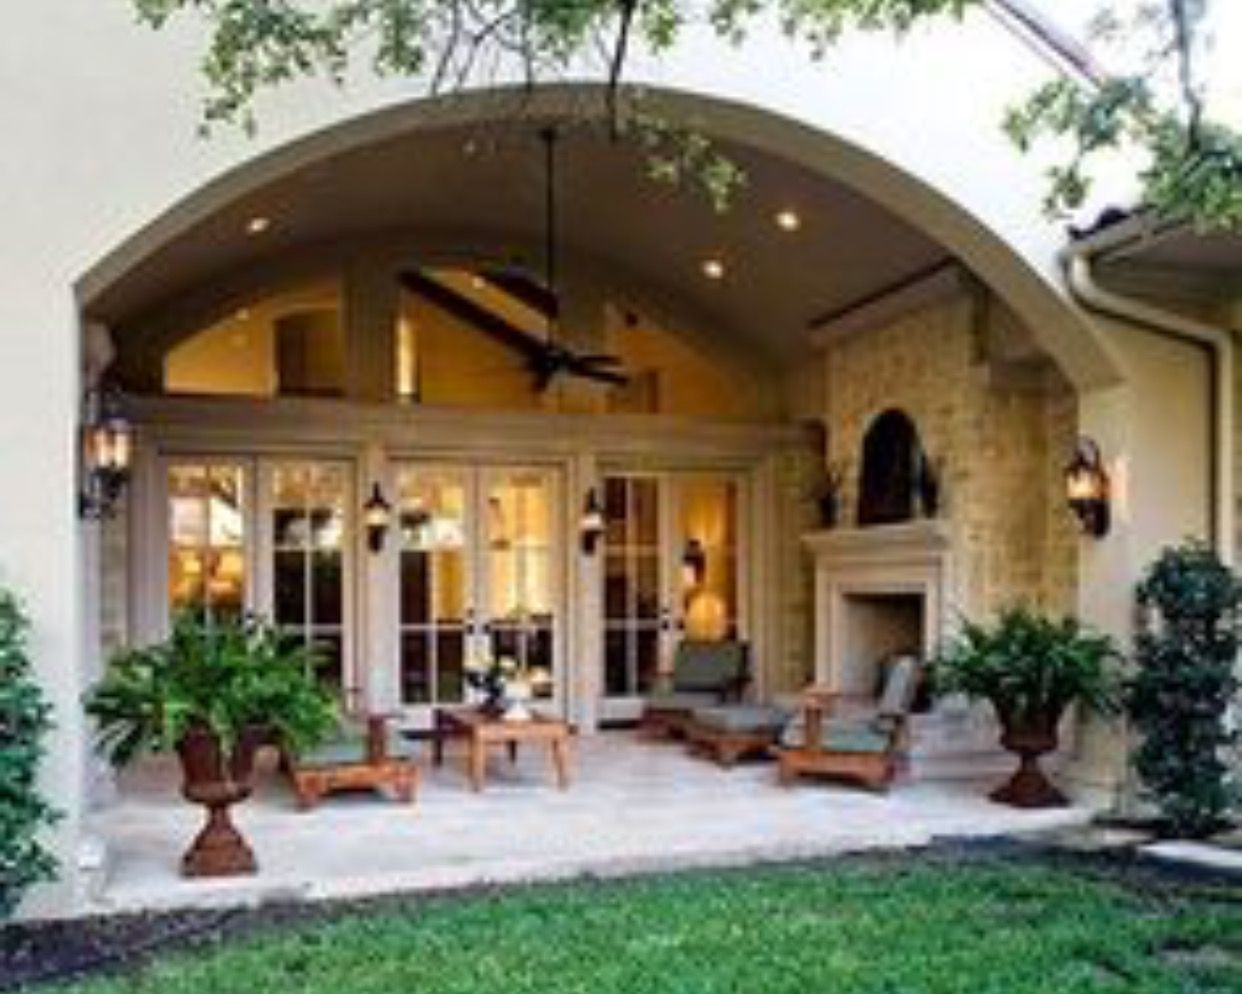 Pin by SoulBearingQuotes on Renovation Ideas for my ... on Add On Patio Ideas id=49019